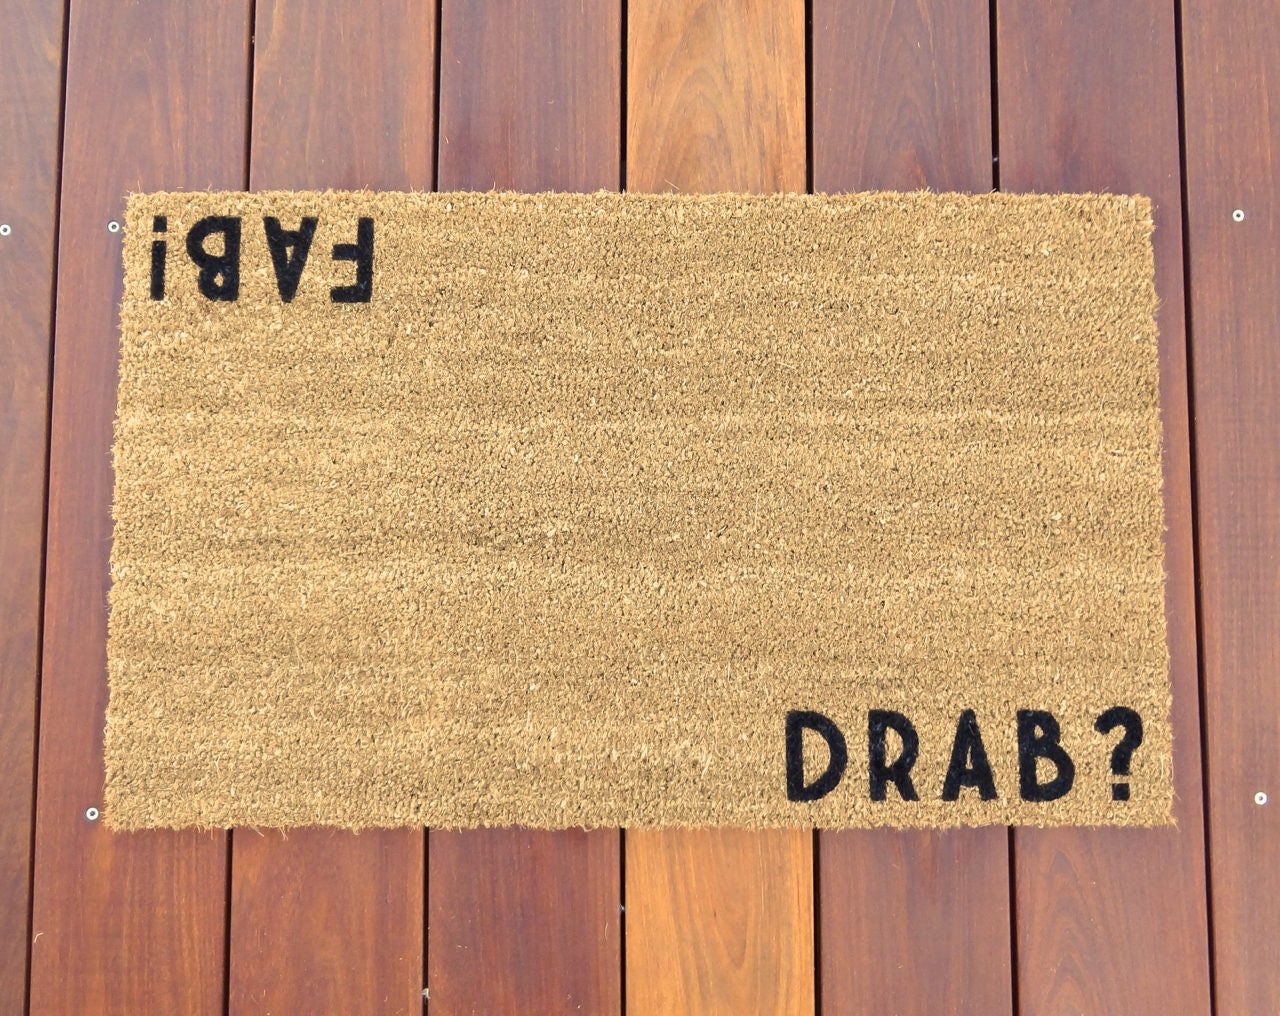 Drab Fab 169 Door Mat Doormat Salon Decor Spa Decor Etsy